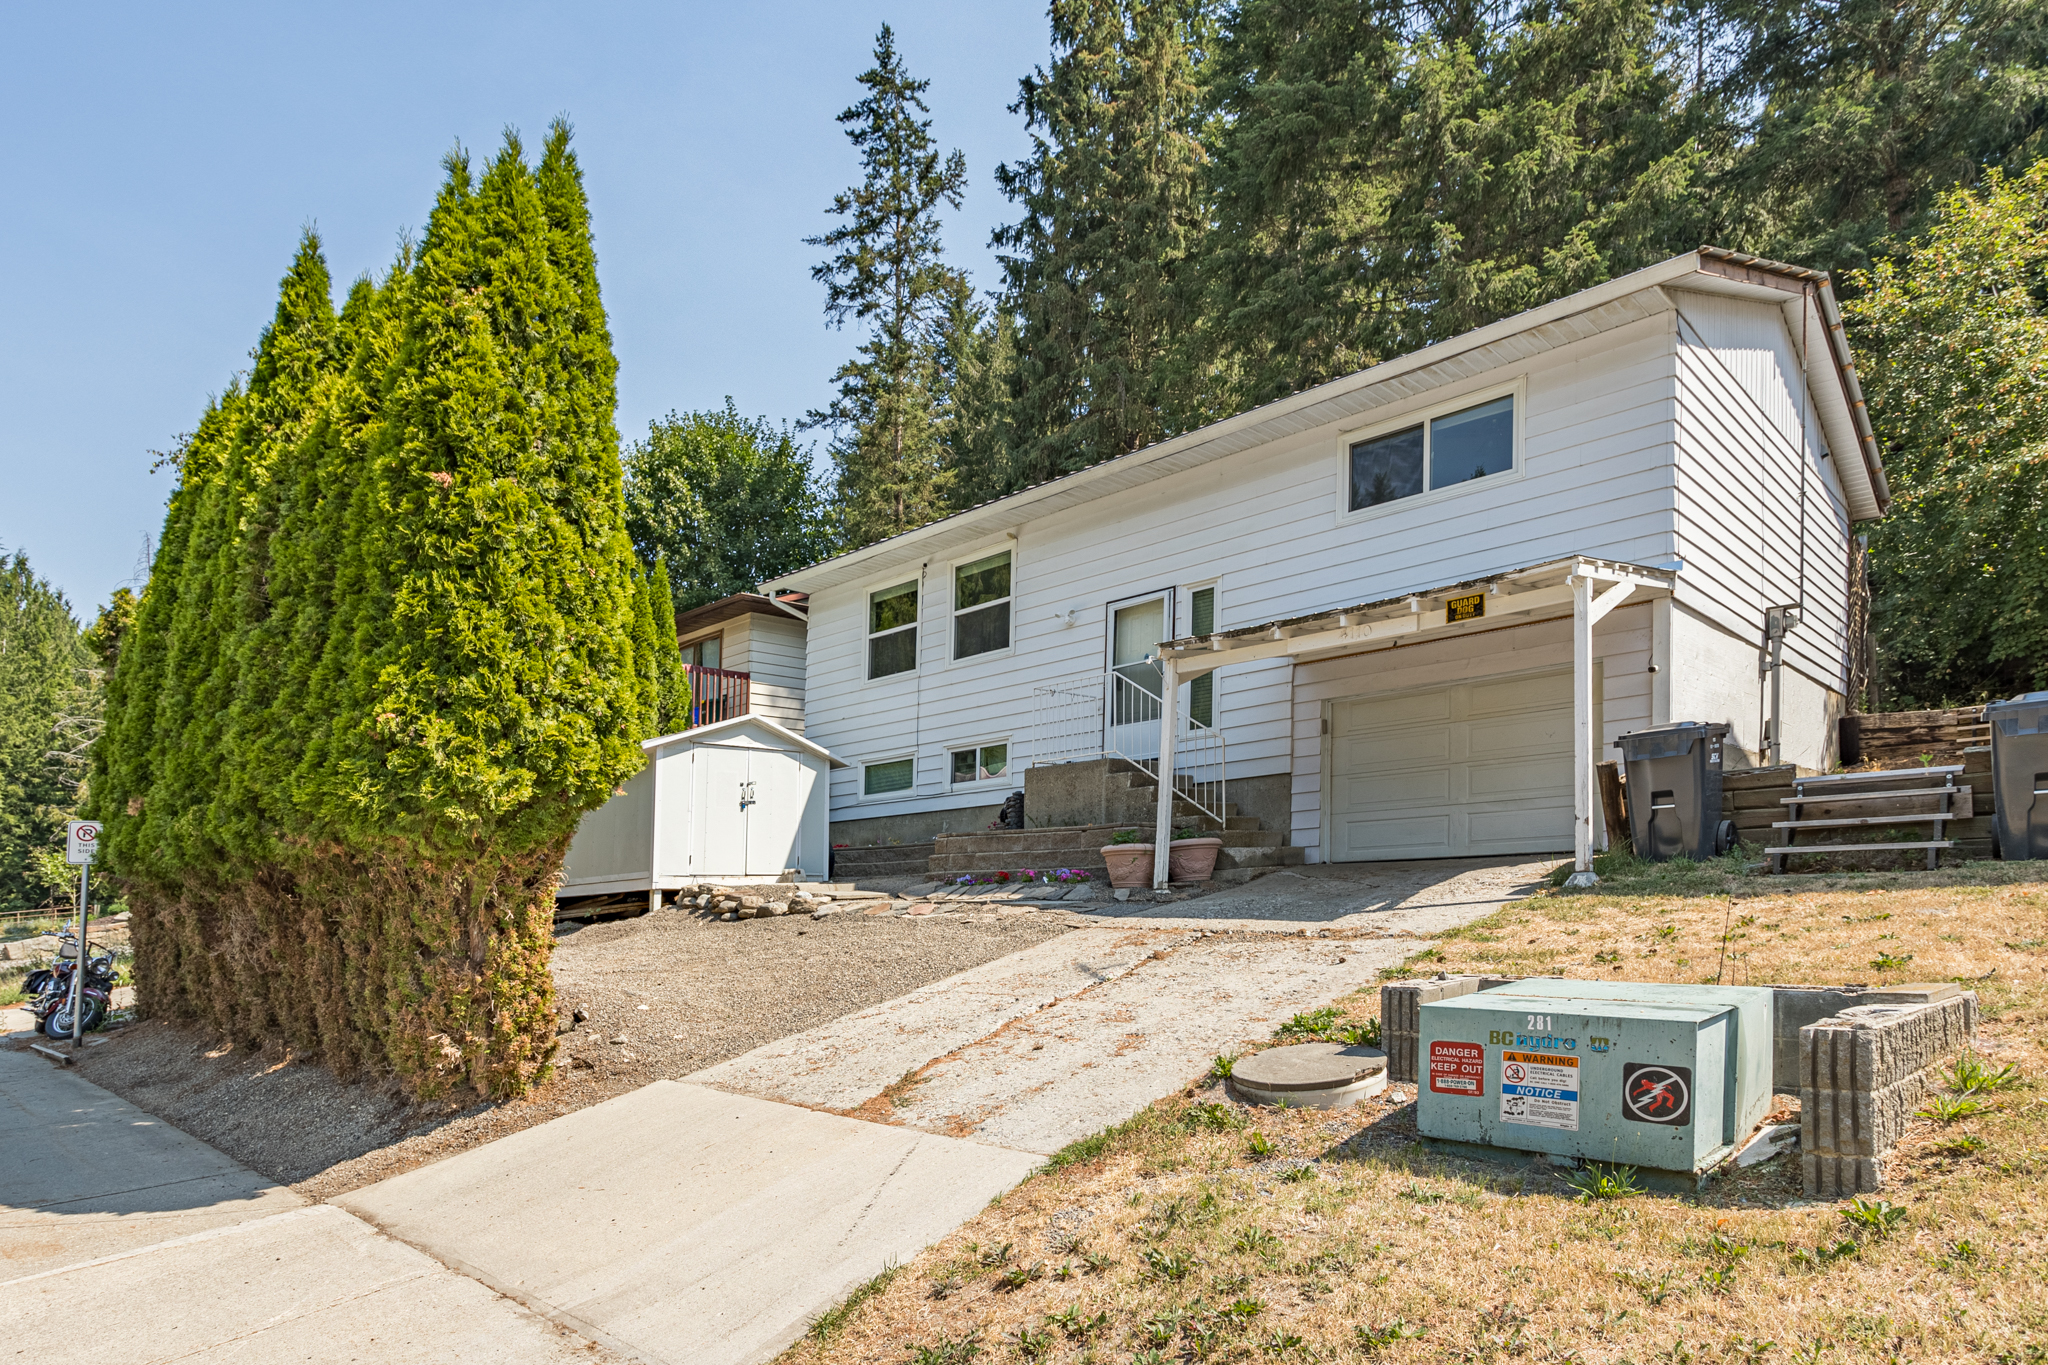 4110 Highland Park Dr, Armstrong, BC | $499,000